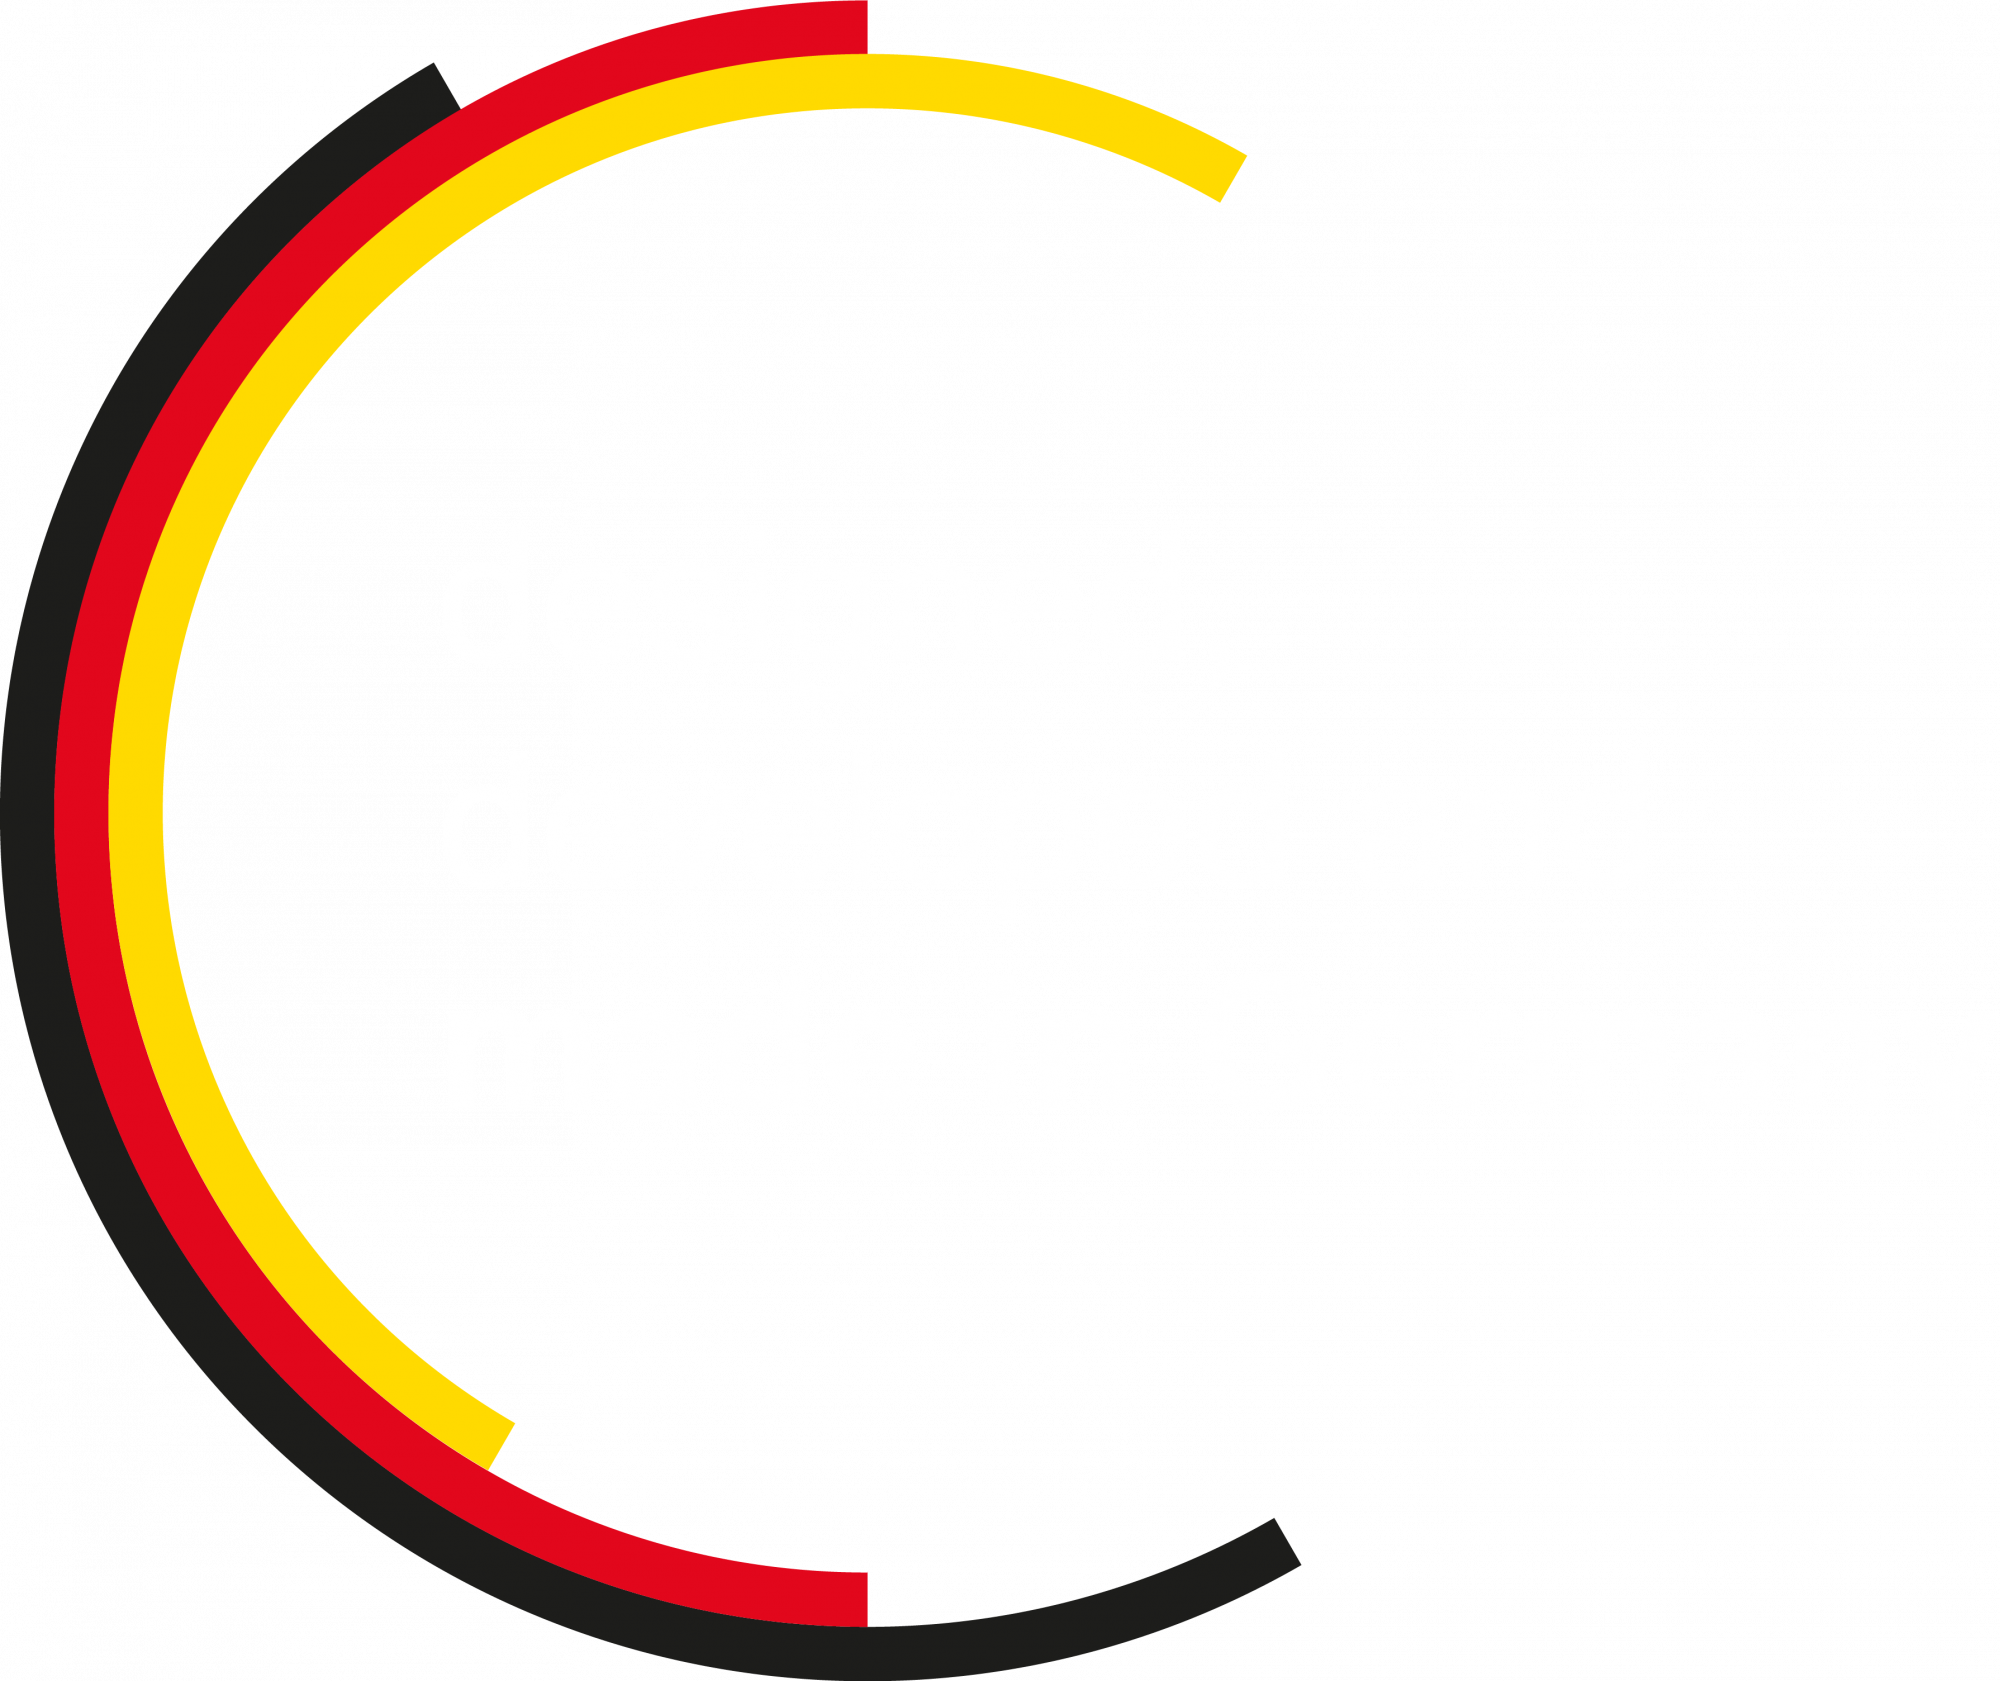 our motto is: designed, developed and made in Germany